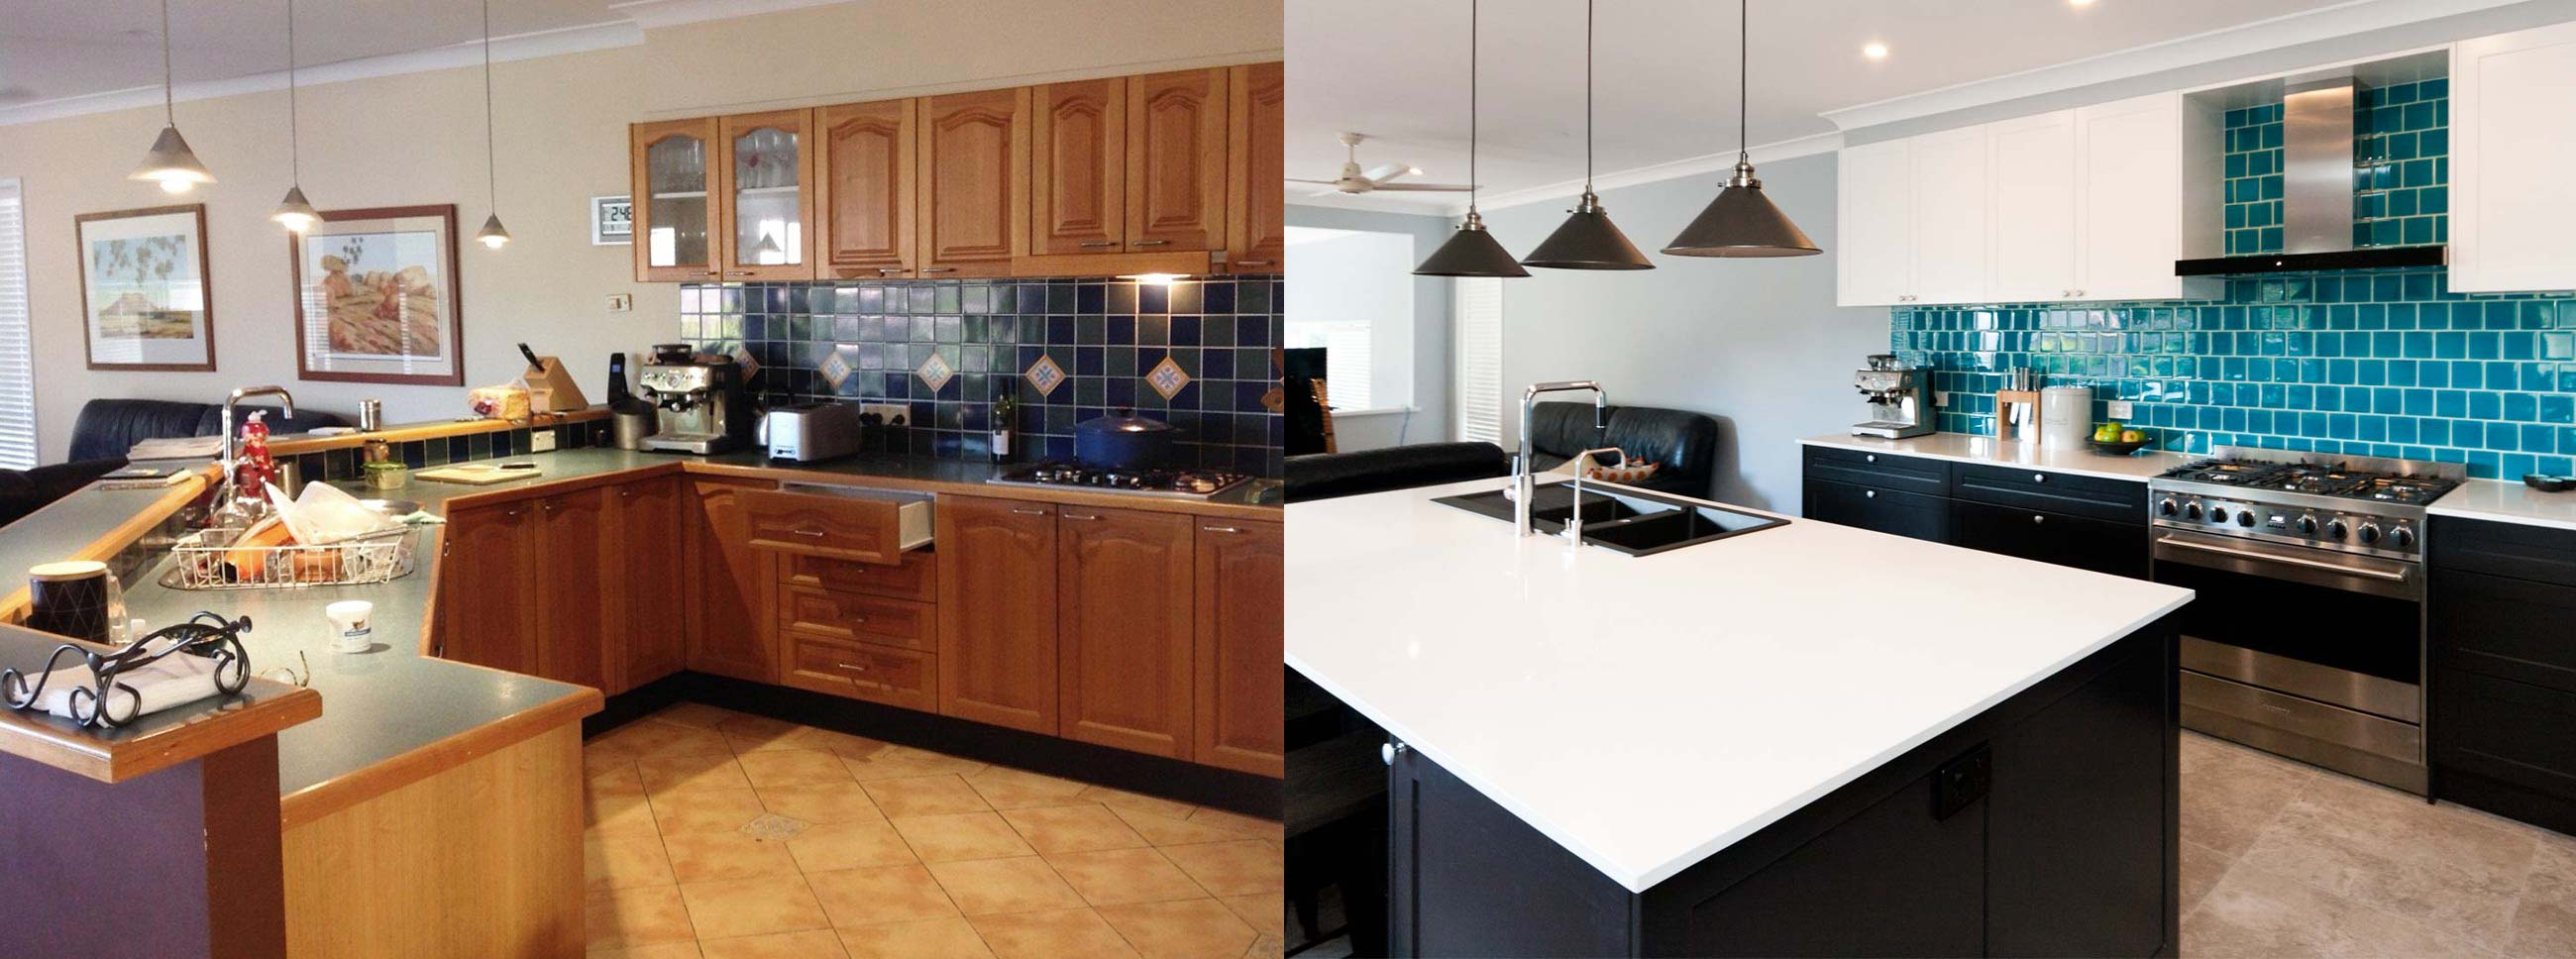 Kitchen Design Before After Kitchen Renovation Black White Polyurethane Classic Kitchen Joinery